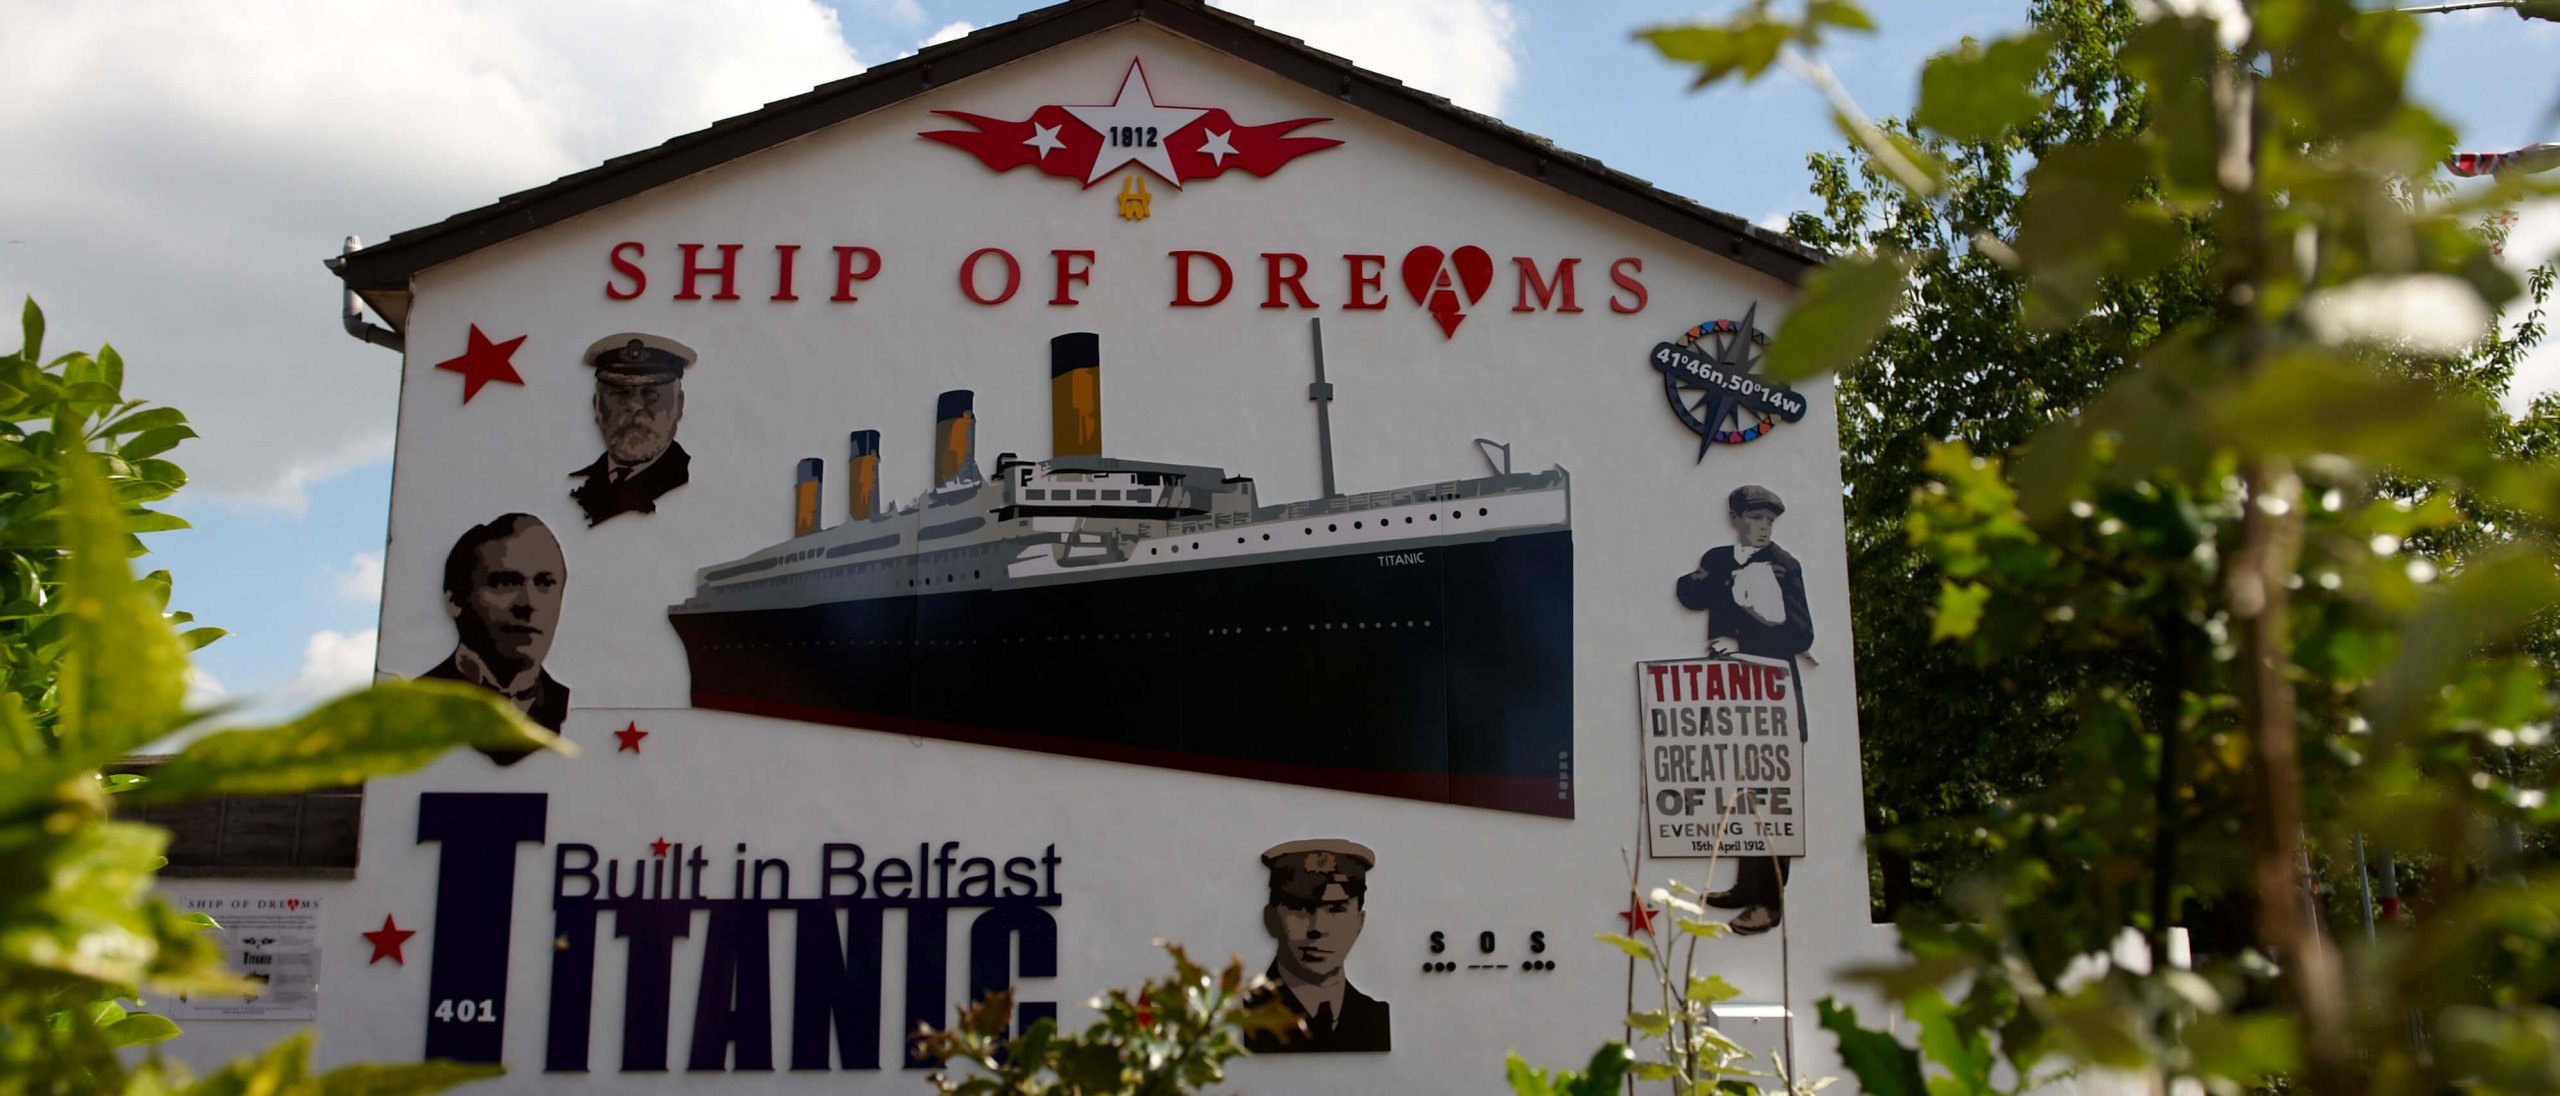 Titanic mural on a building in Belfast, Northern Ireland